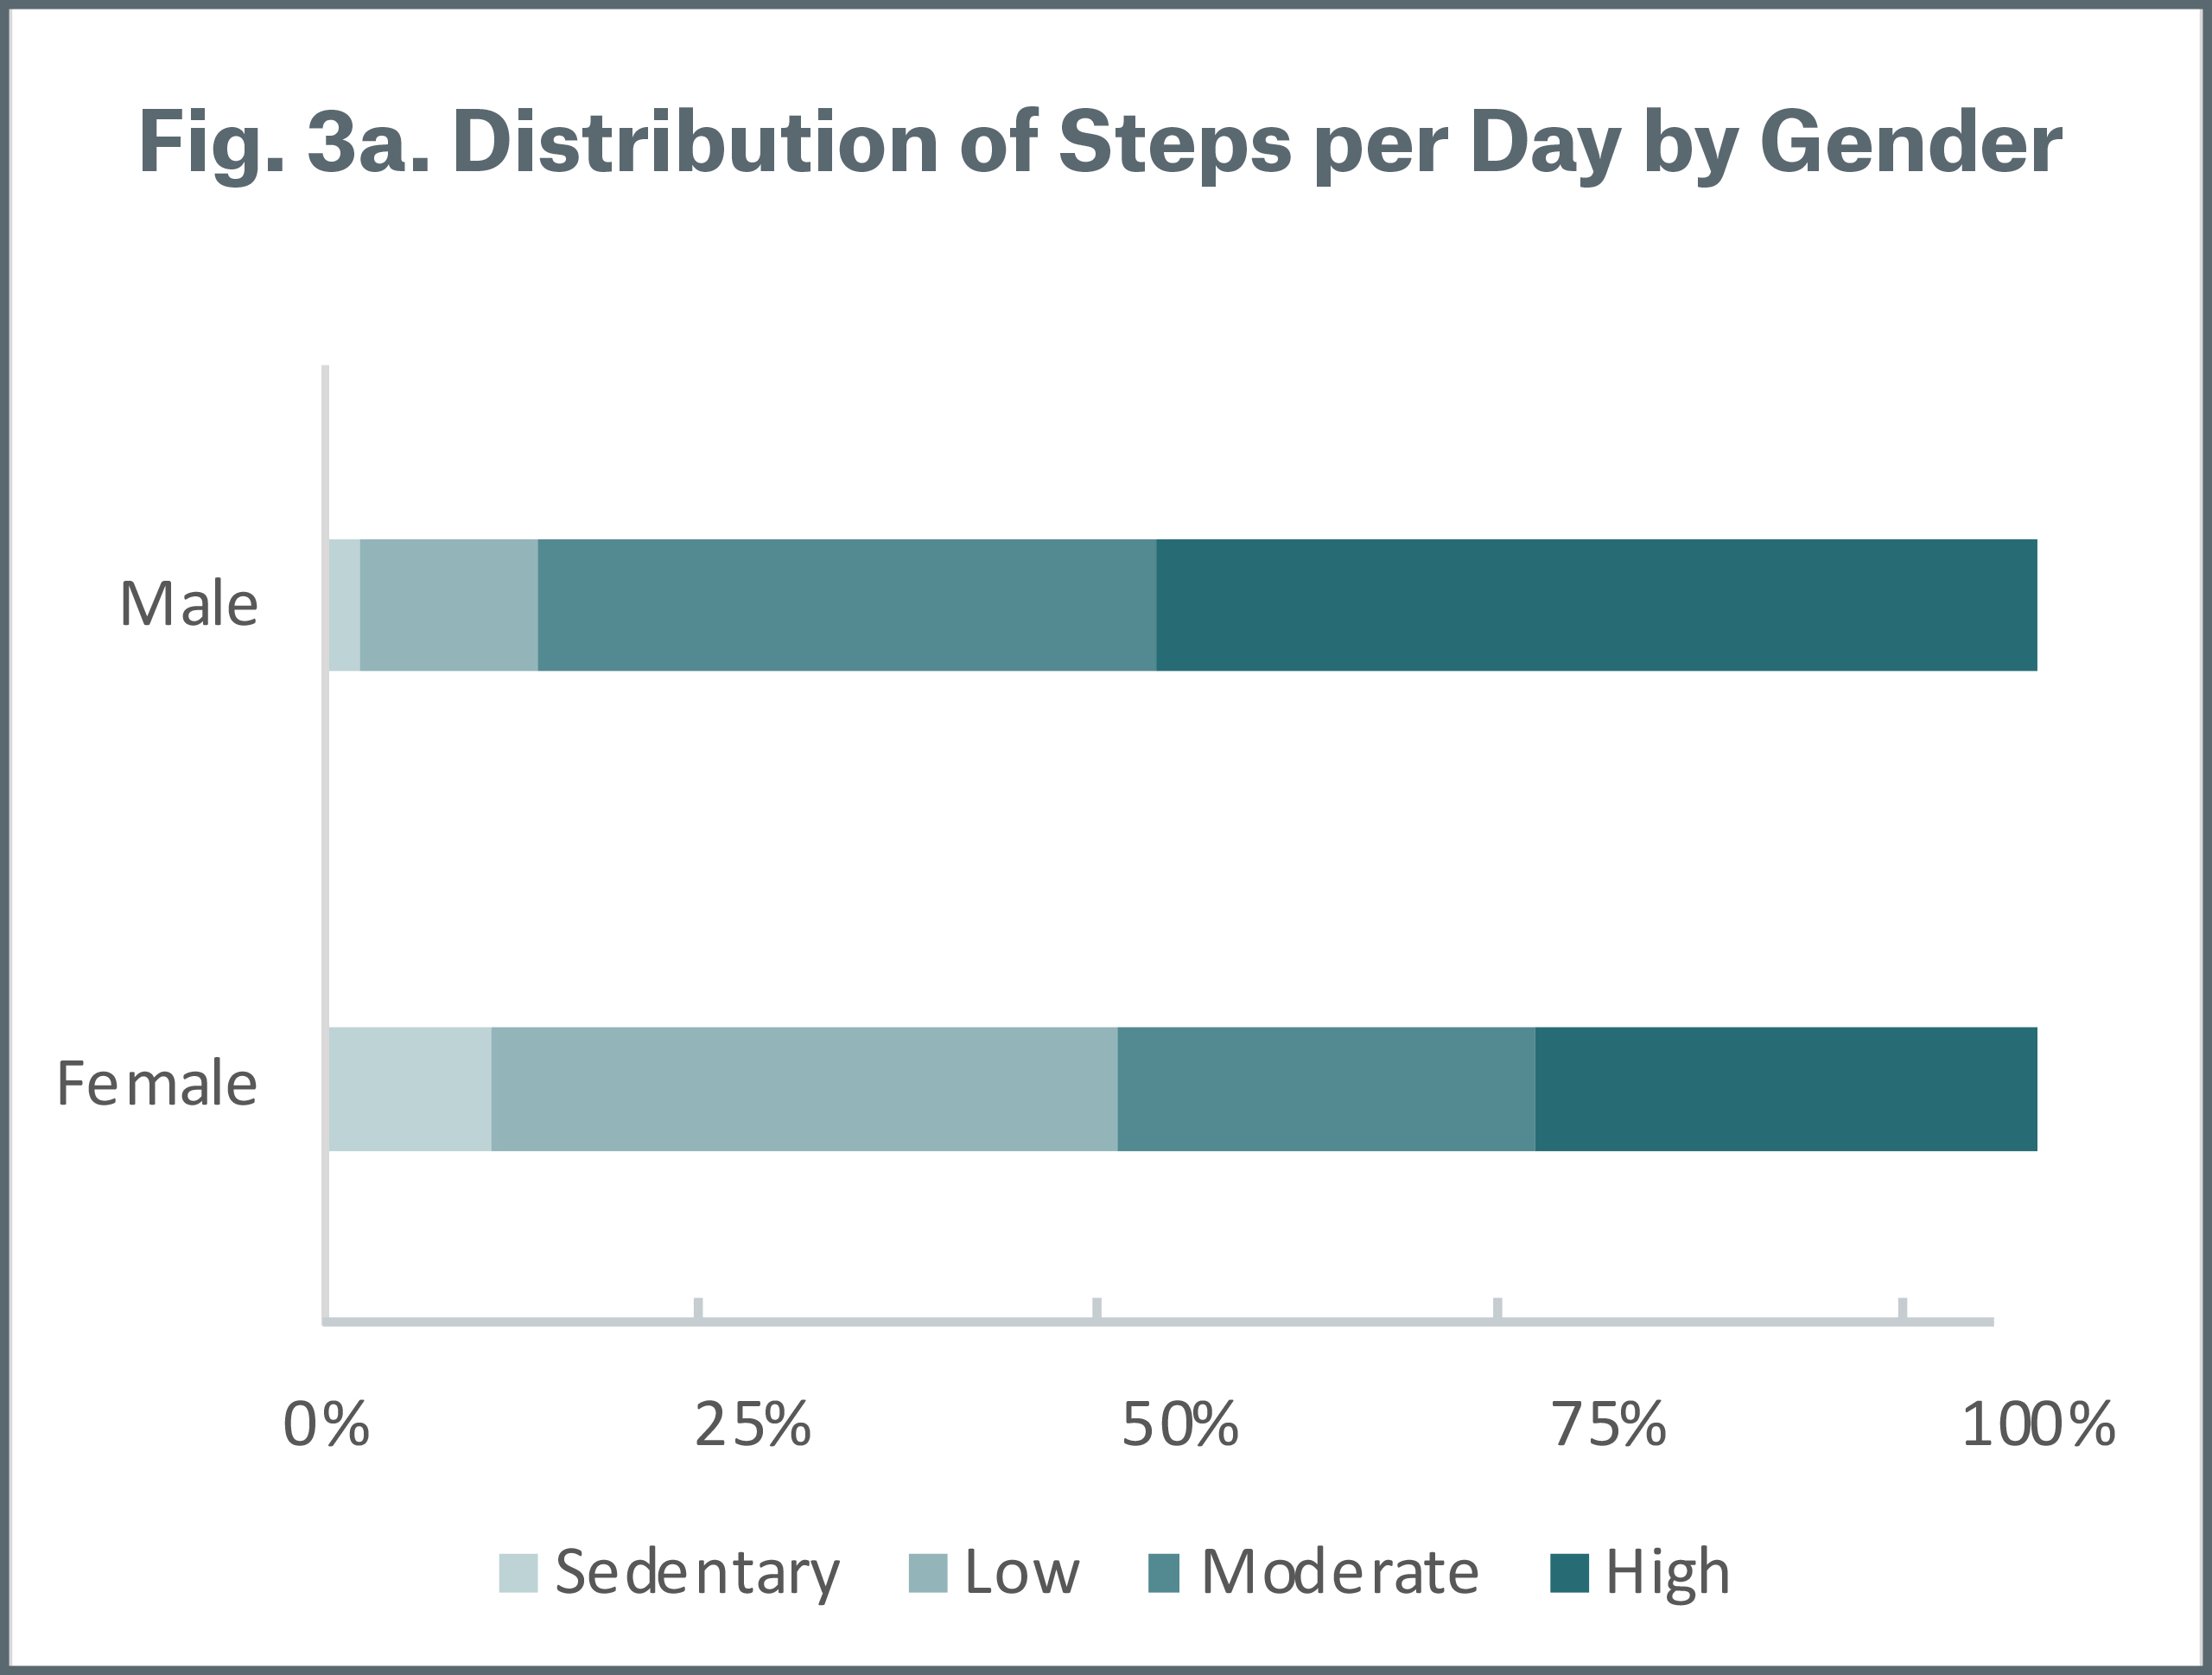 Figure 3a Distribution of Steps per Day by Gender